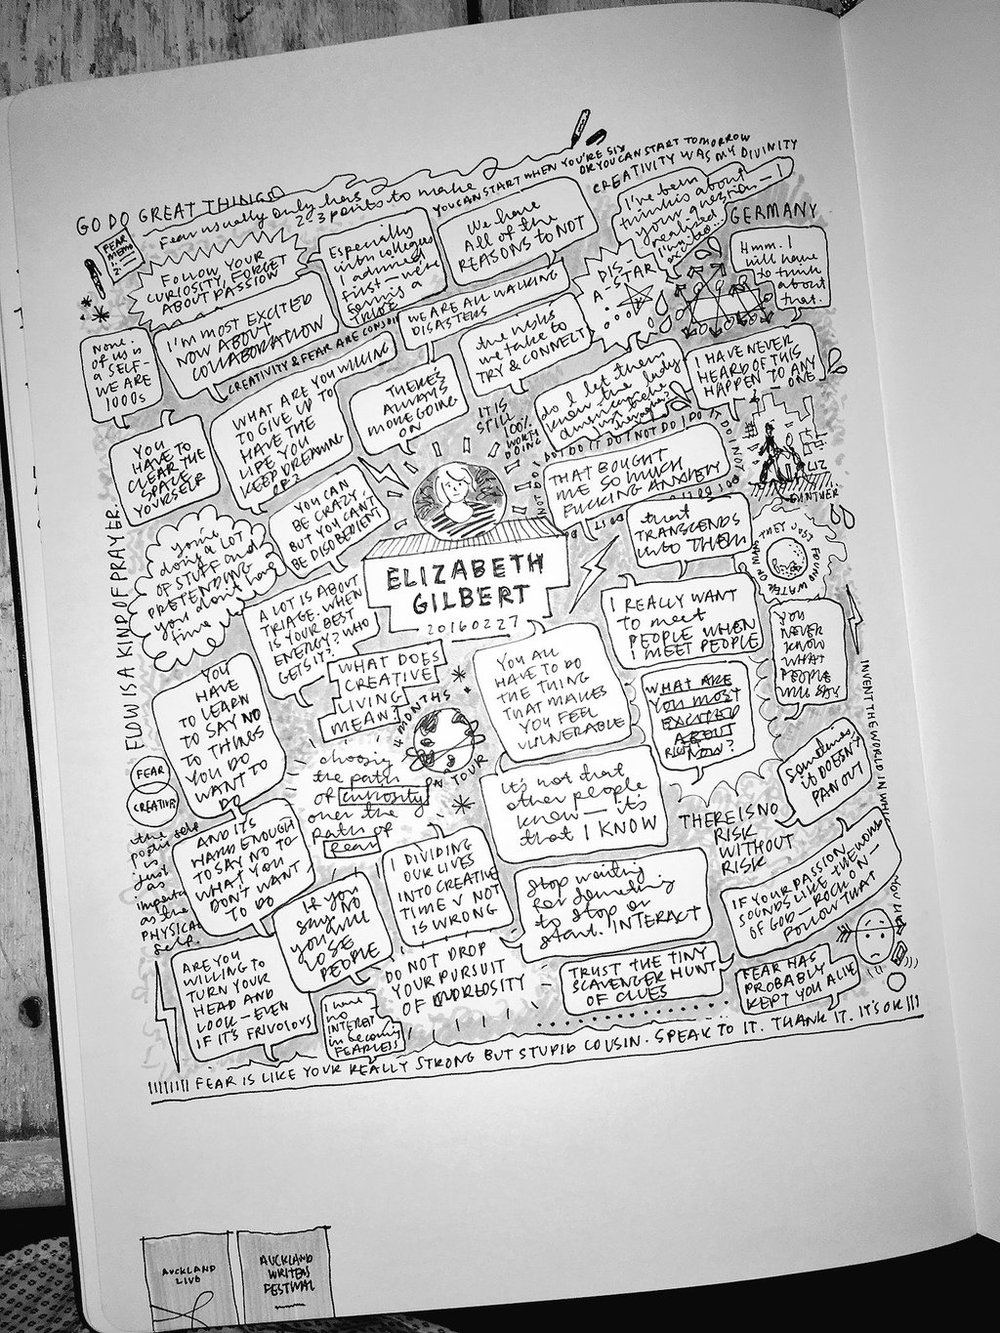 Gareth Parry's amaazing sketch notes!